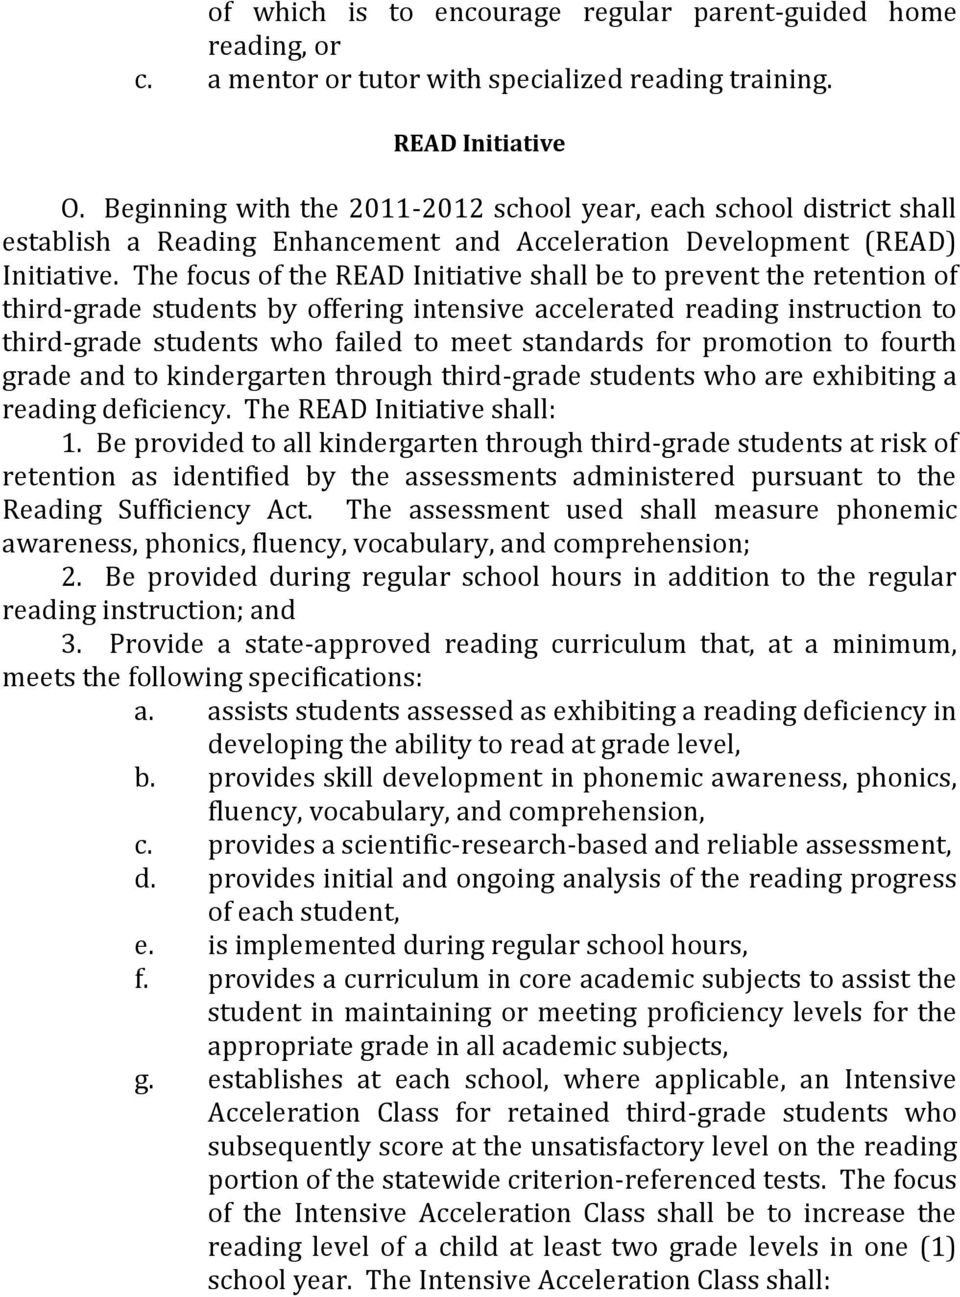 The focus of the READ Initiative shall be to prevent the retention of third-grade students by offering intensive accelerated reading instruction to third-grade students who failed to meet standards